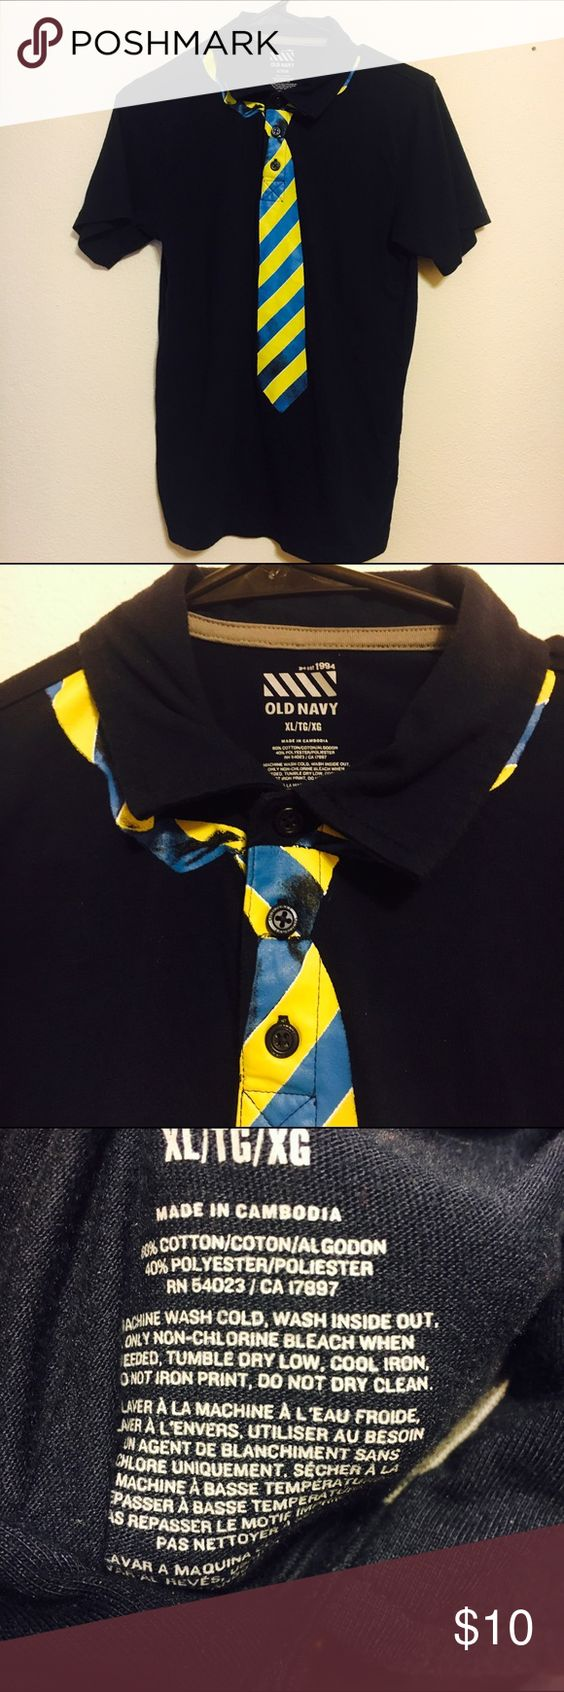 Boys old navy tie polo size xl Boys old navy blue shirt with collar and fake painted on tie. Super cute and extremely soft. In good used condition. Old Navy Shirts & Tops Polos